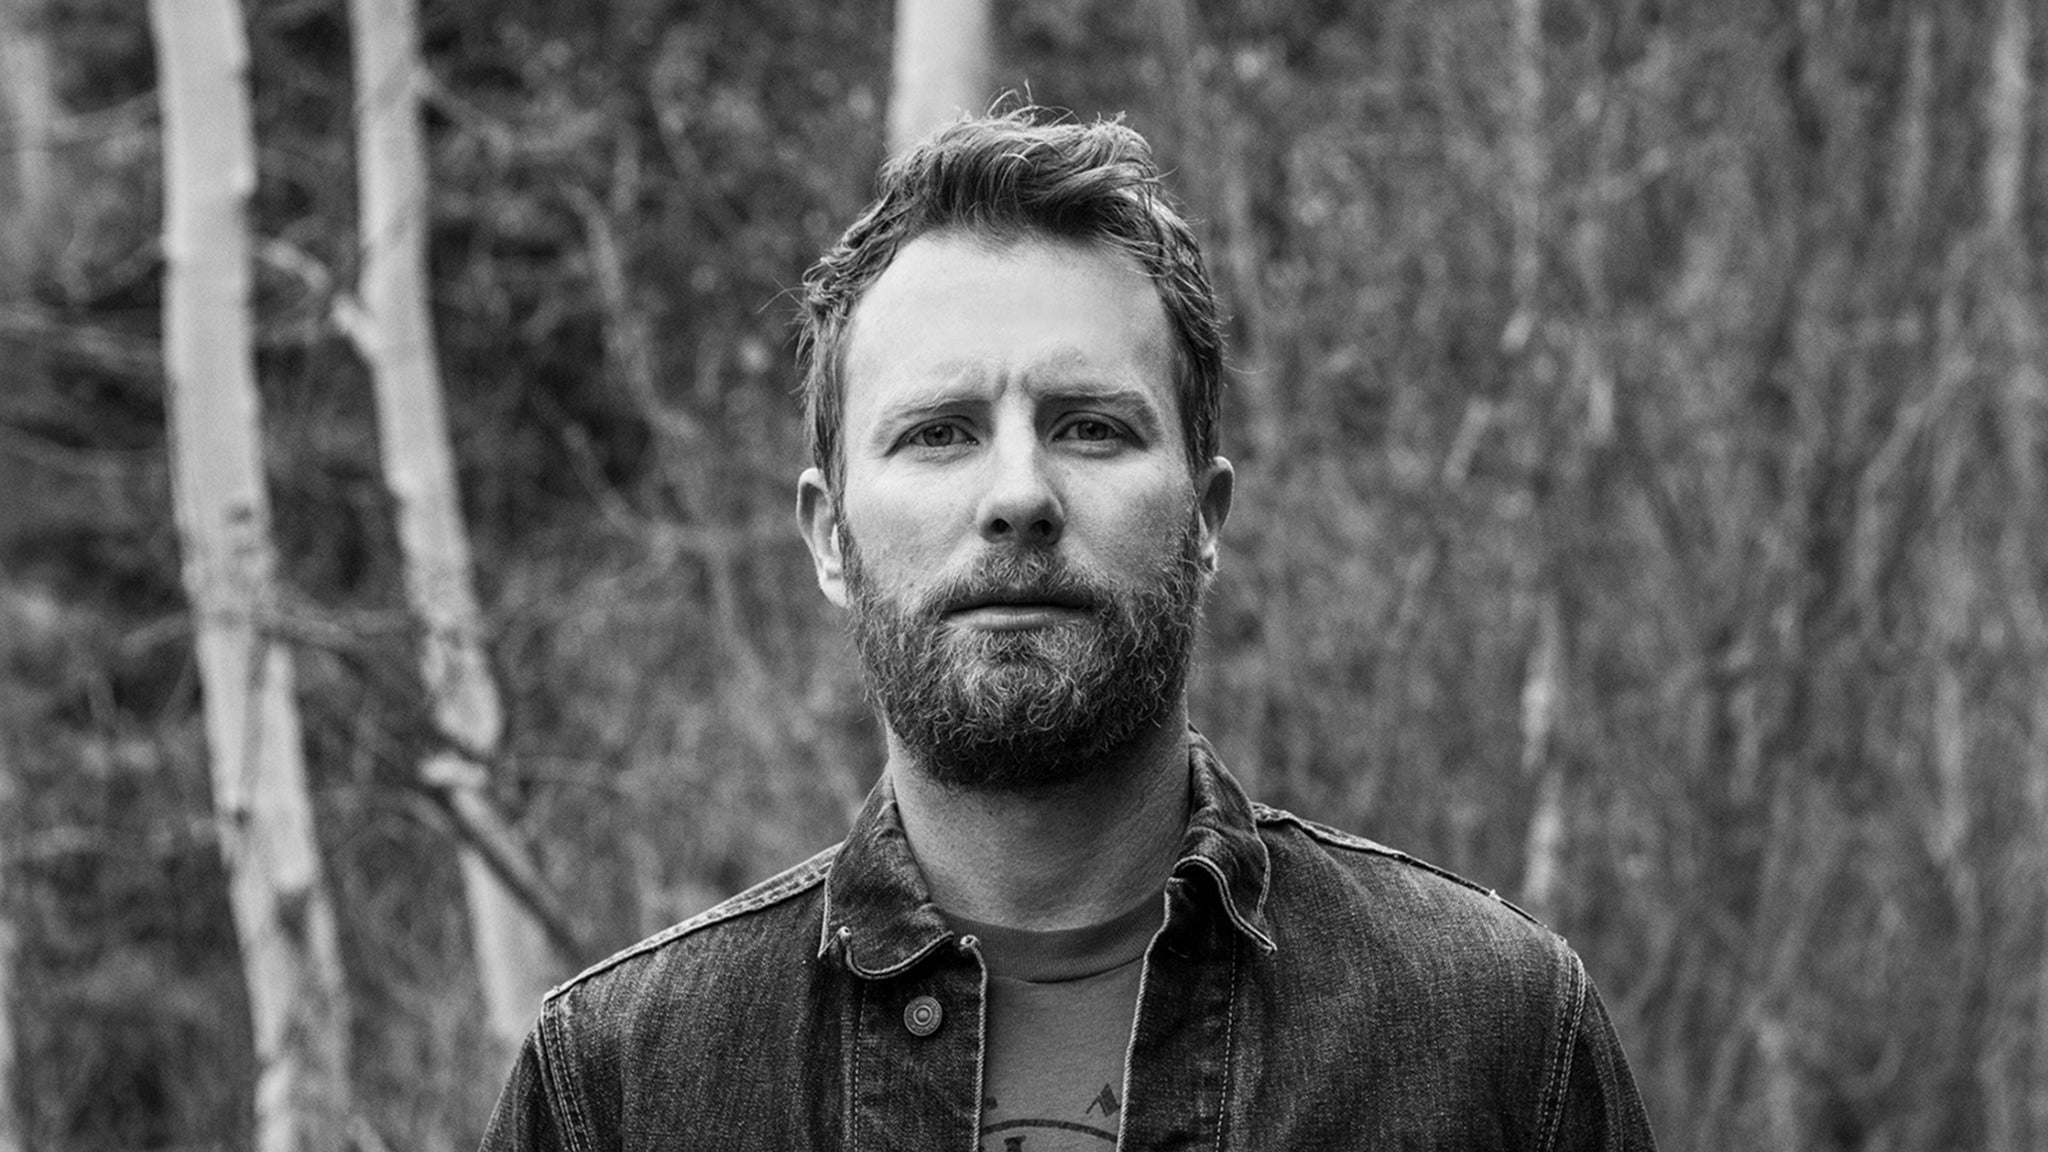 Dierks Bentley Tour 2020.Dierks Bentley Tickets Dierks Bentley Concert Tickets